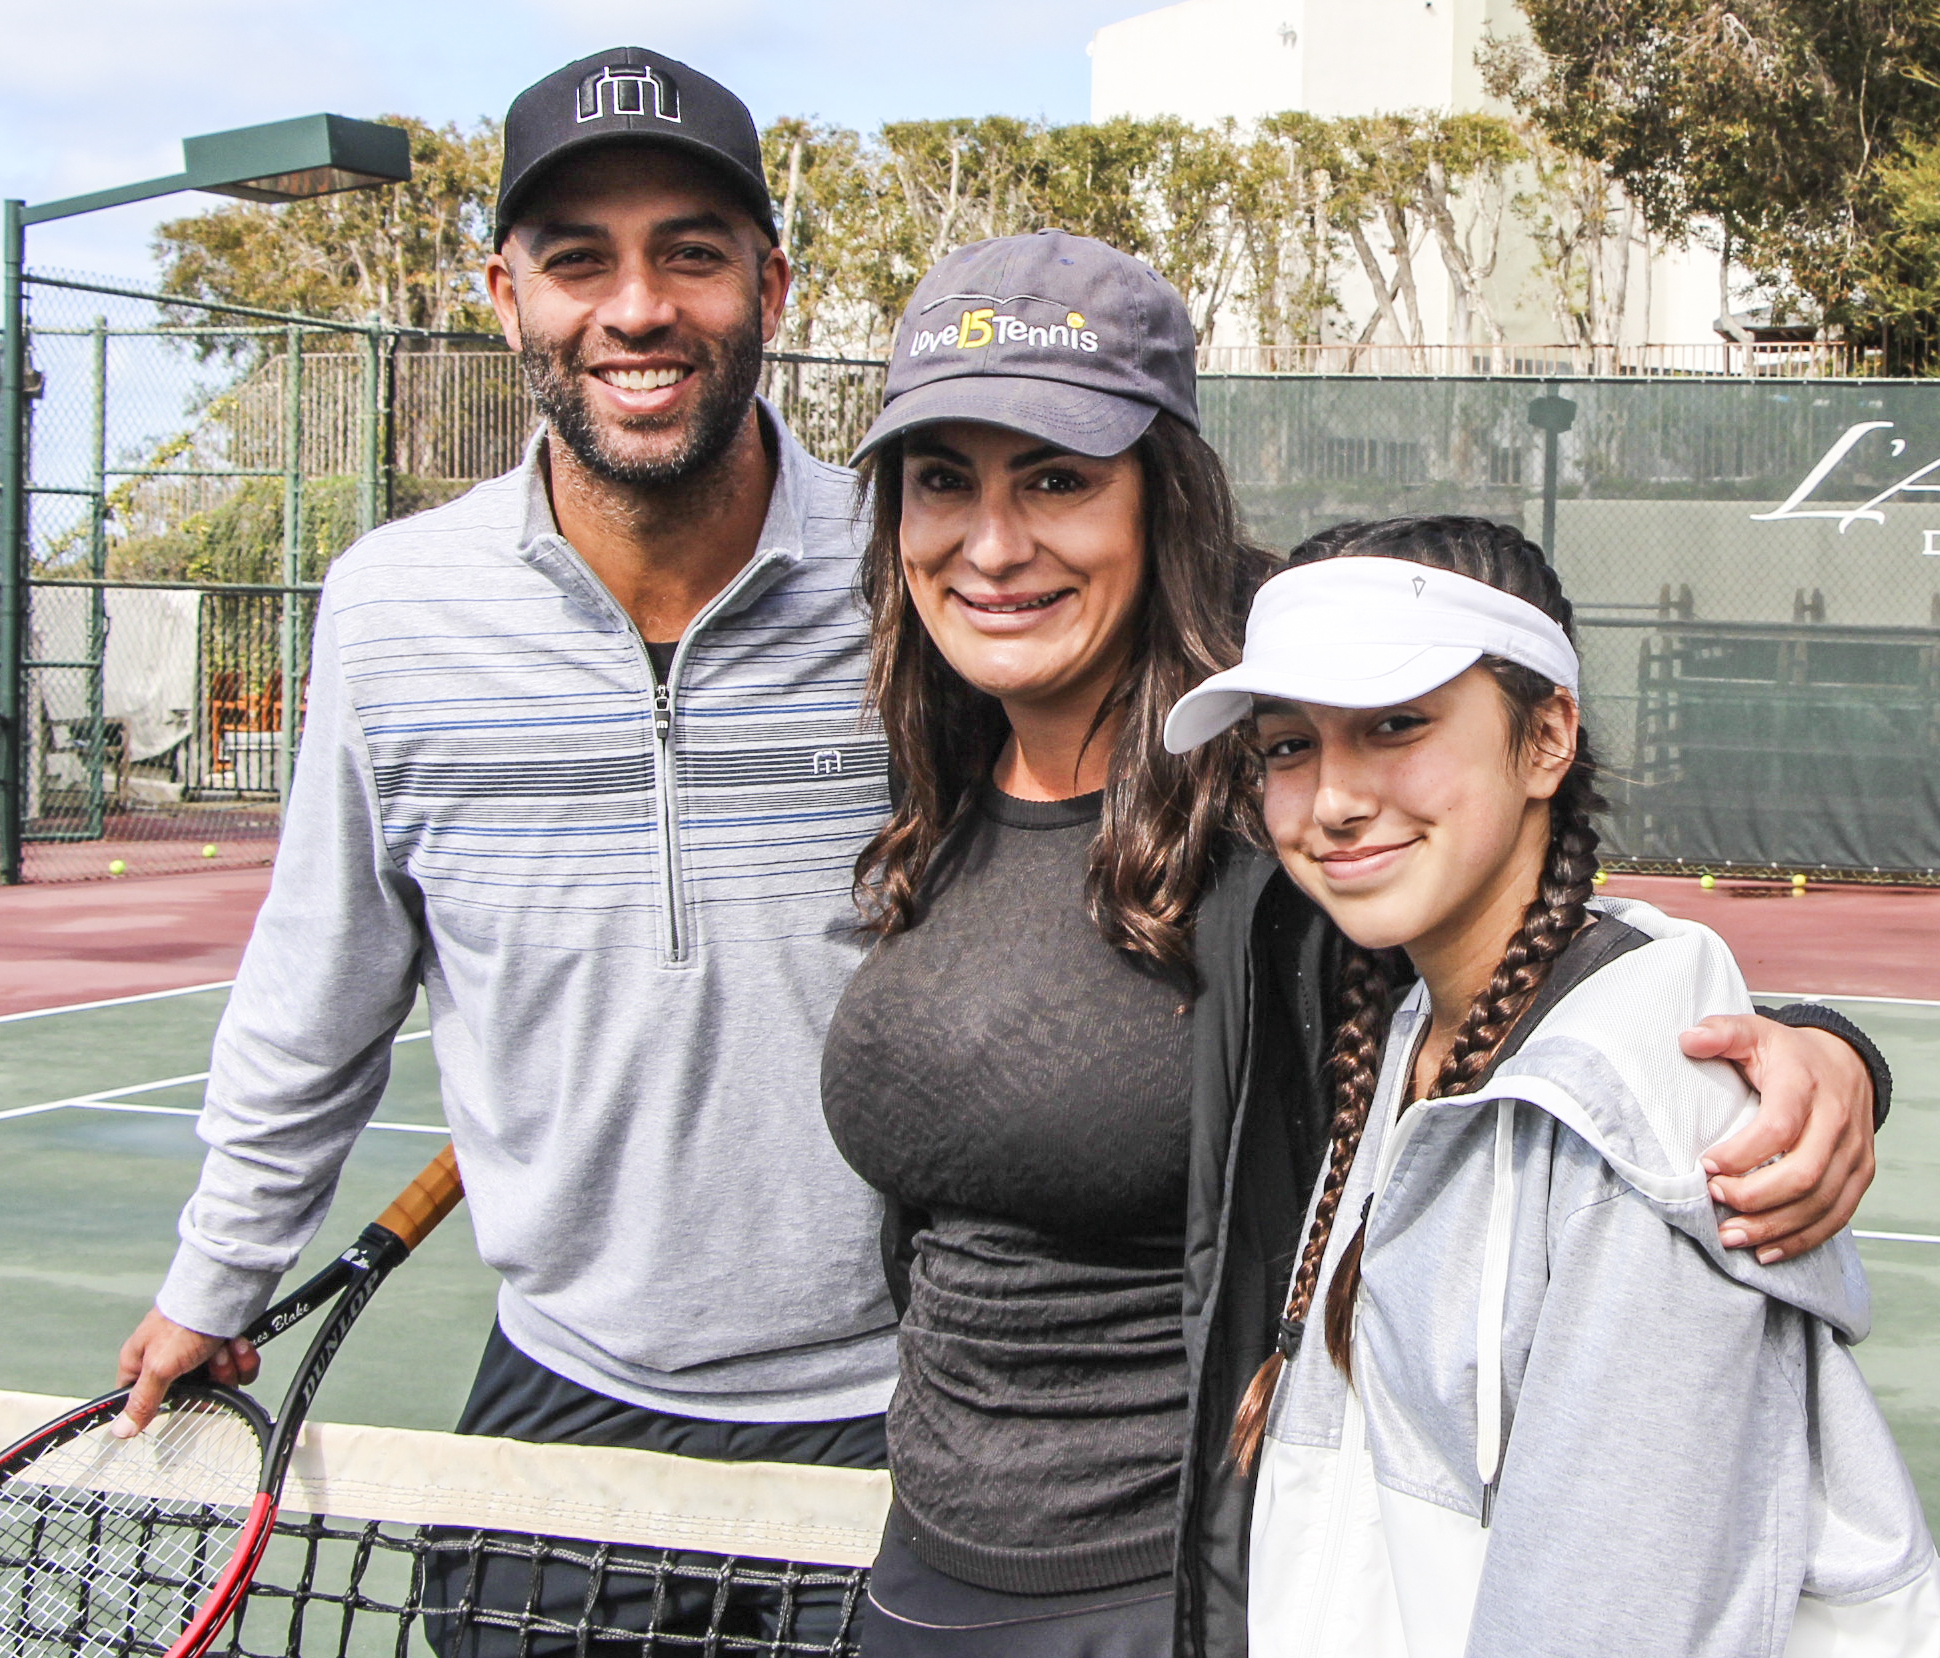 When tennis and helping others collide it equals a lot of love